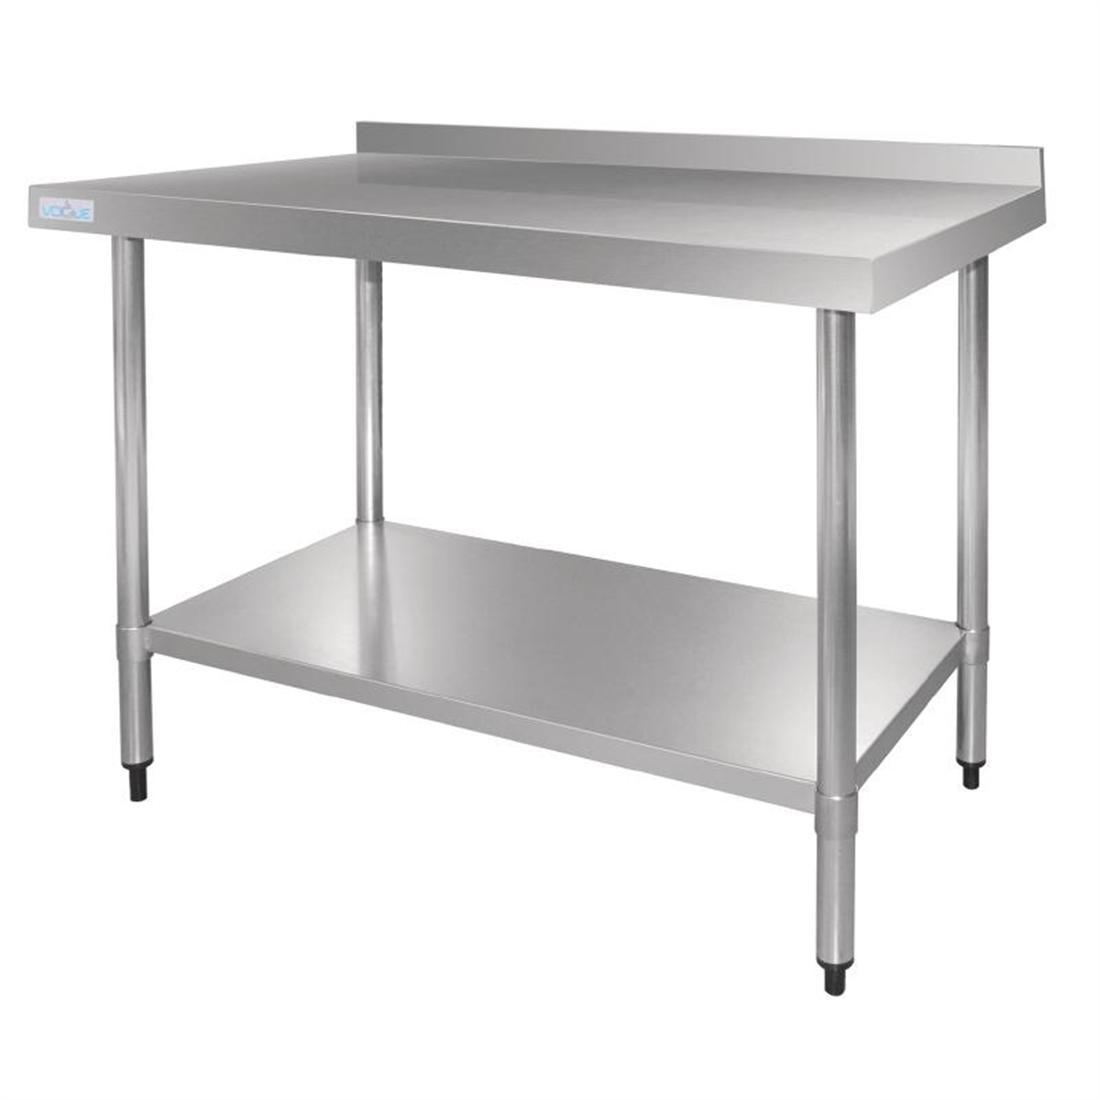 Vogue Stainless Steel Table with Upstand 900mm - Each - GJ506